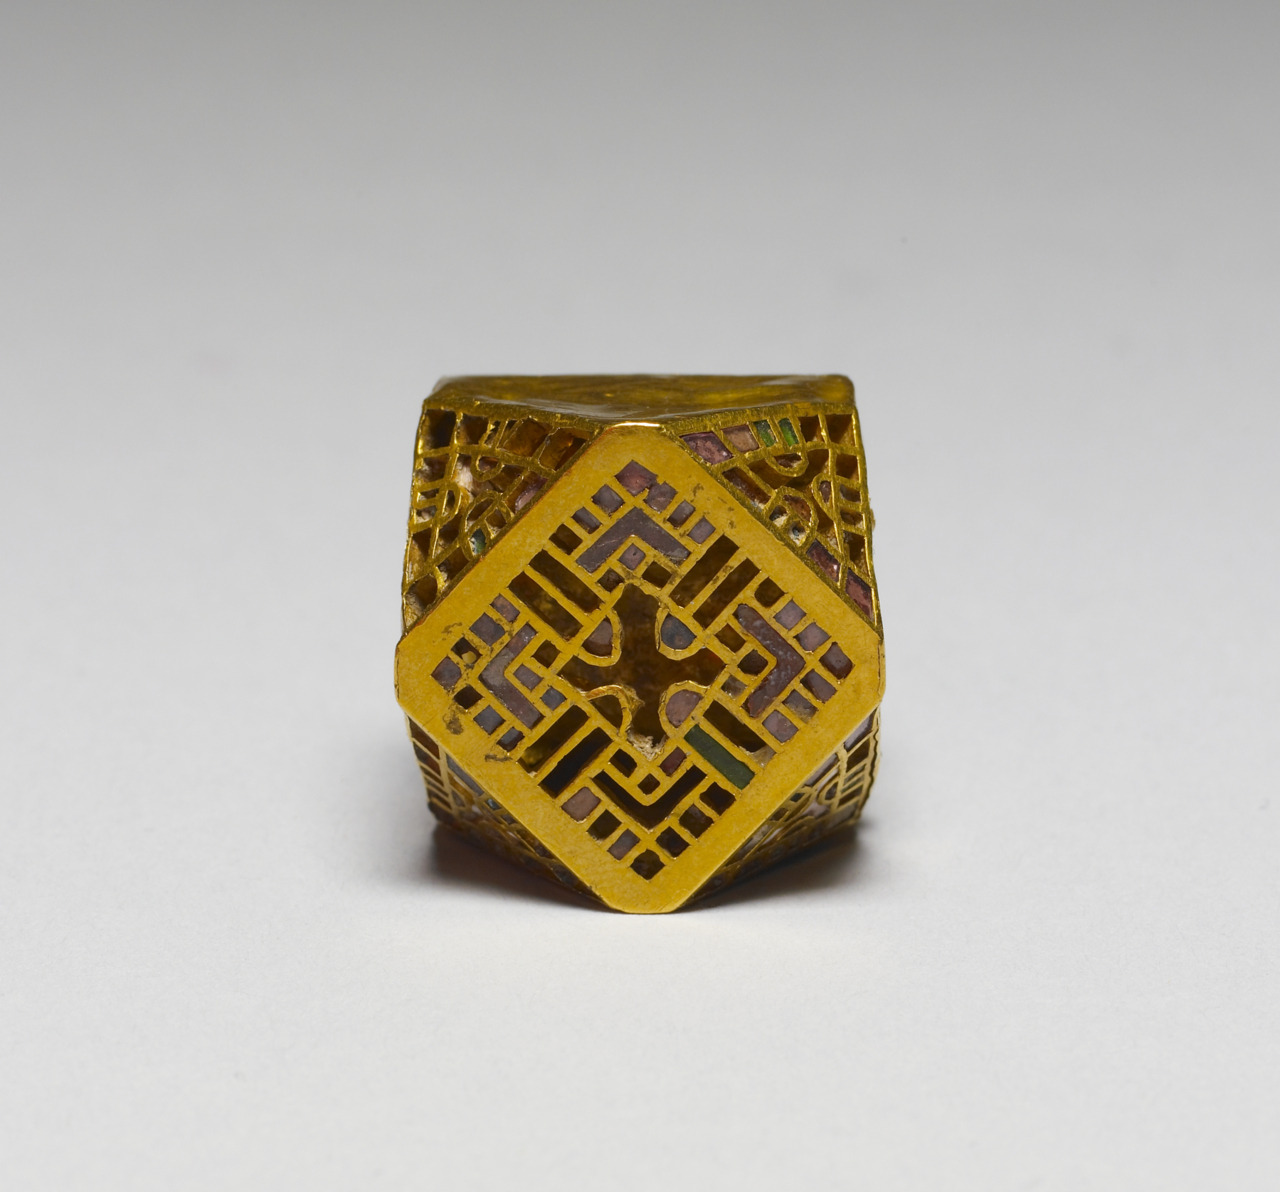 late 5th-early 6th century (Early Medieval) This ornament may have formed part of an earring or necklace. The polyhedral shape was a favorite among the Ostrogoths.